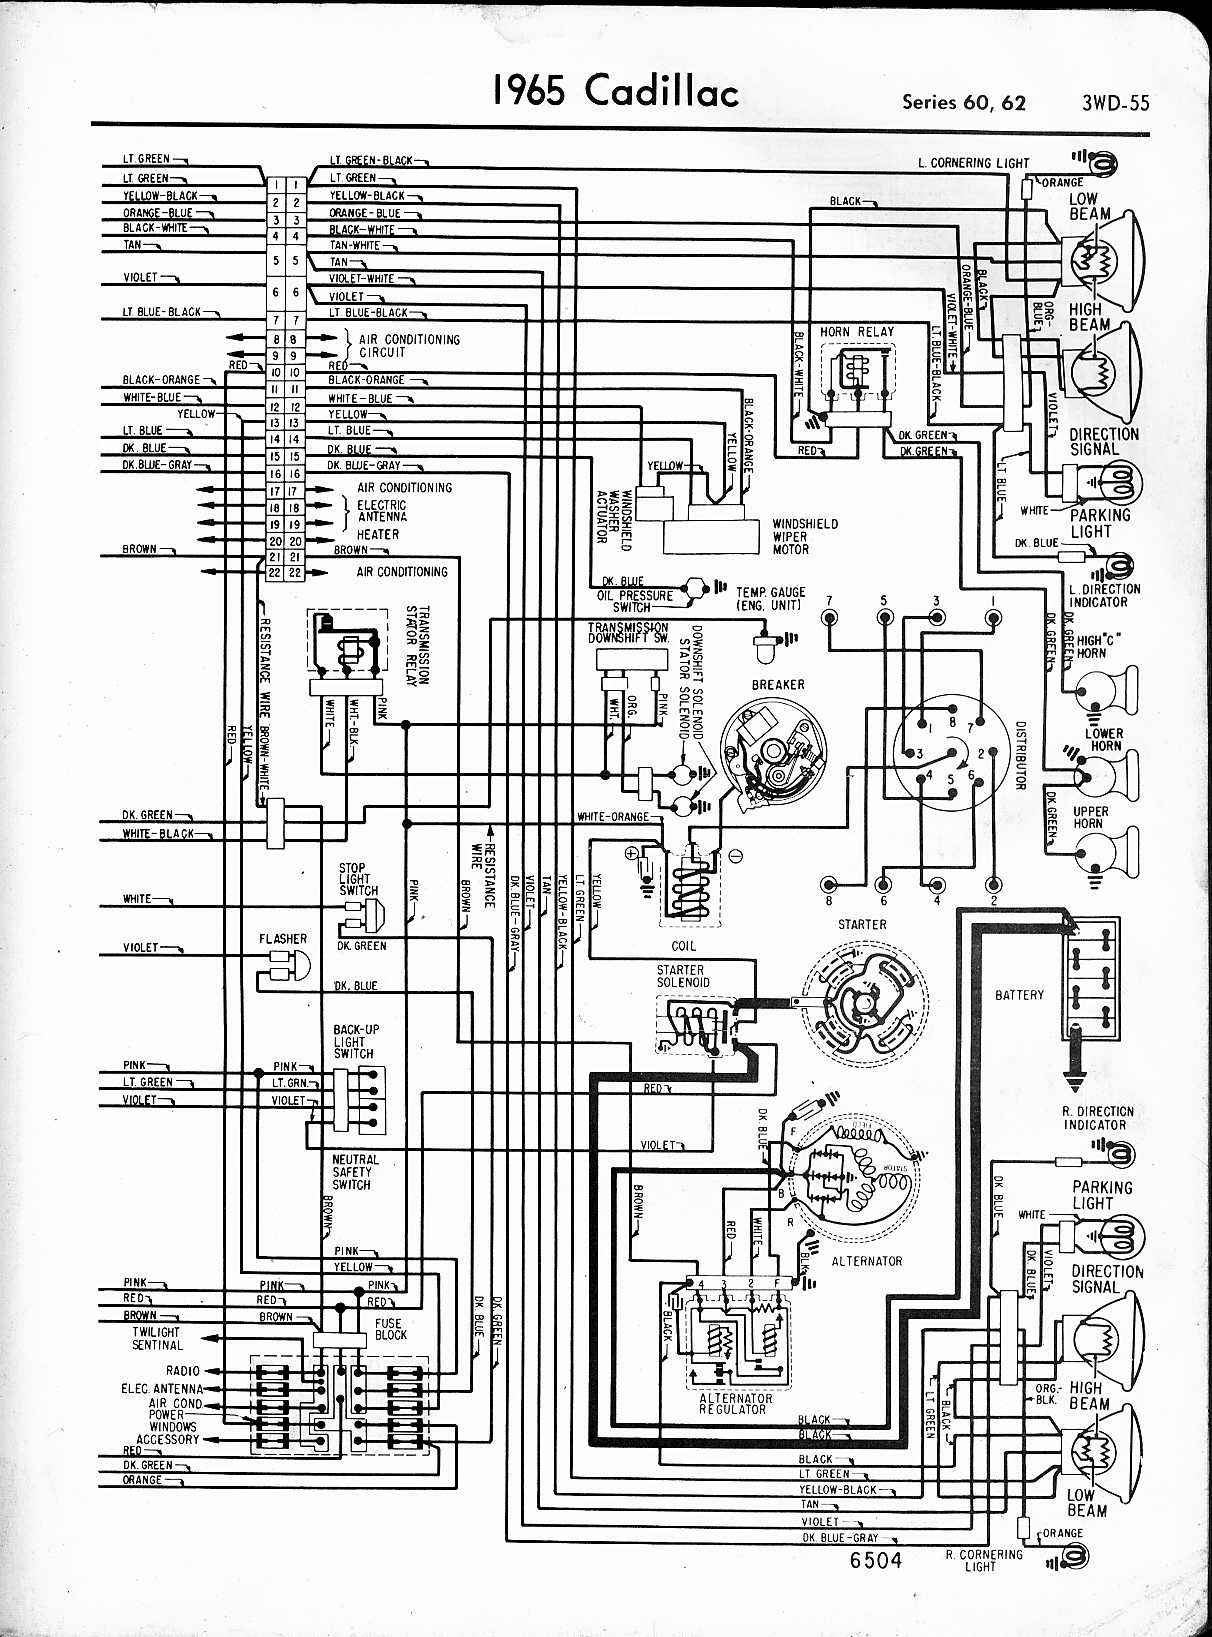 hight resolution of 1968 cadillac deville wiring diagram wiring diagram todayscadillac wiring schematics wiring diagram todays 1968 cadillac deville